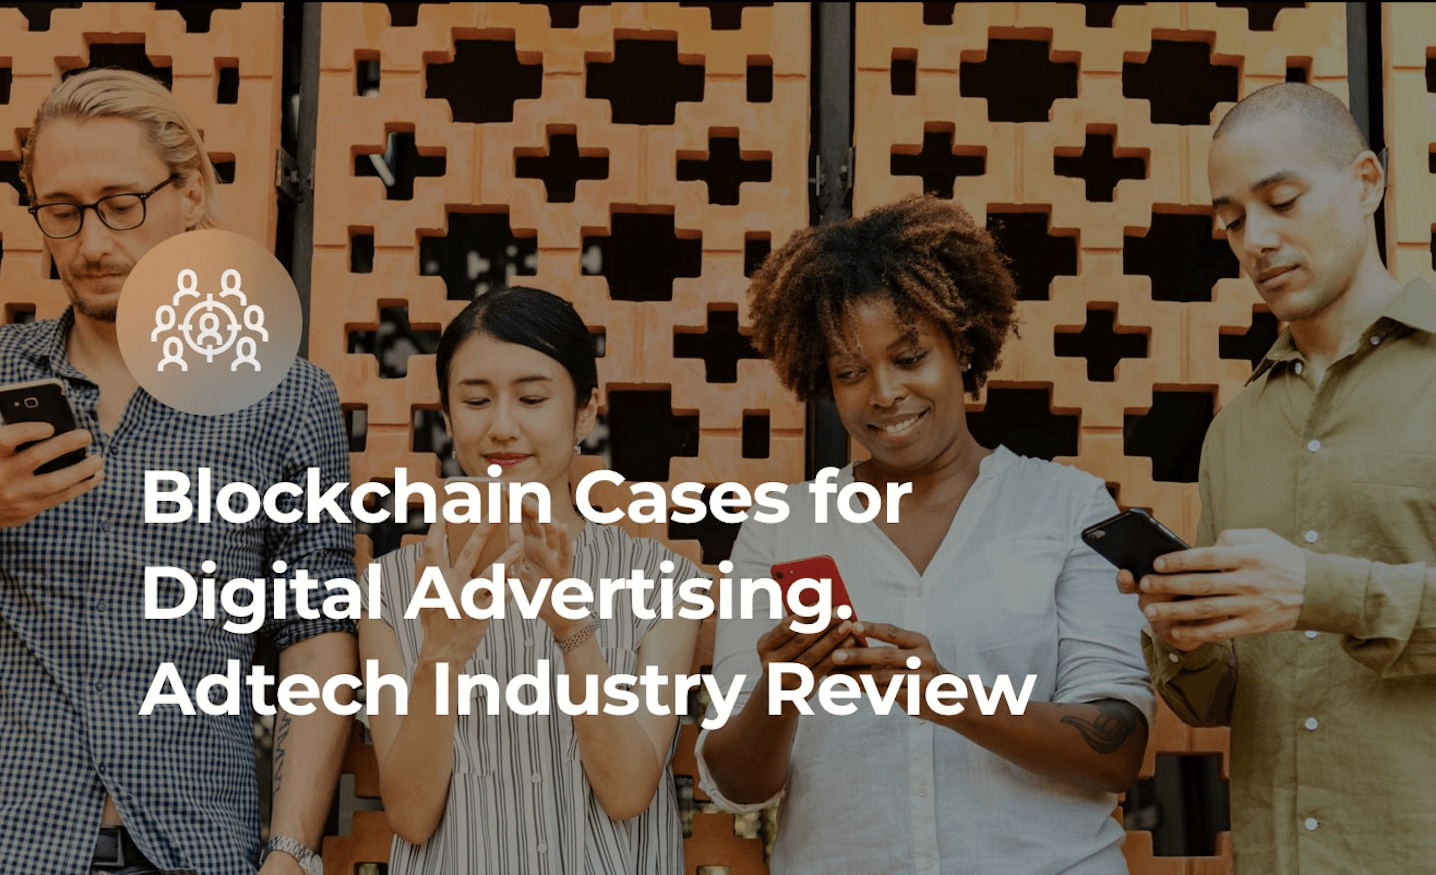 Adtech and blockchain cover